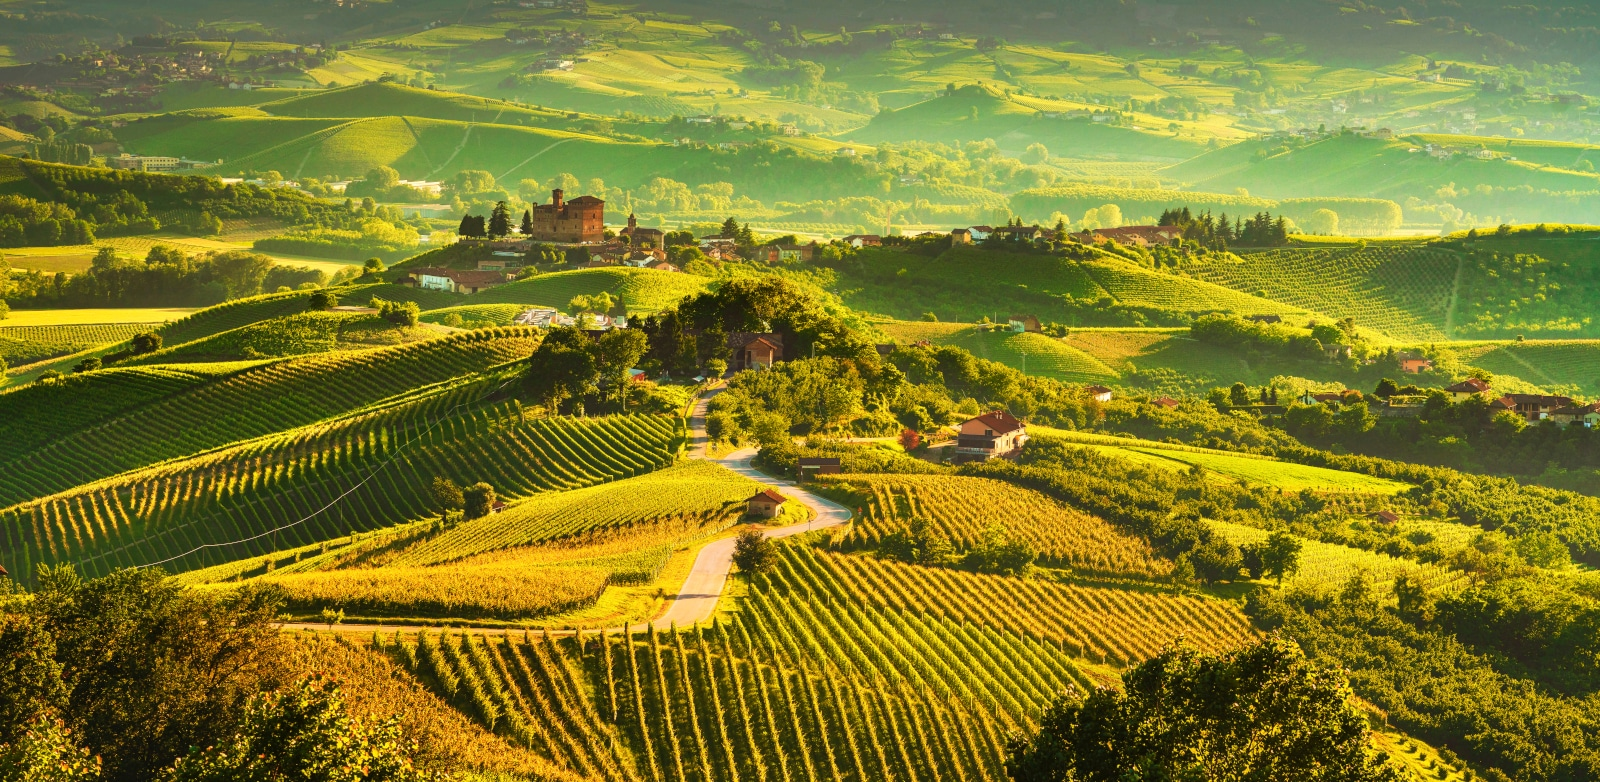 Where Does Nebbiolo Come From